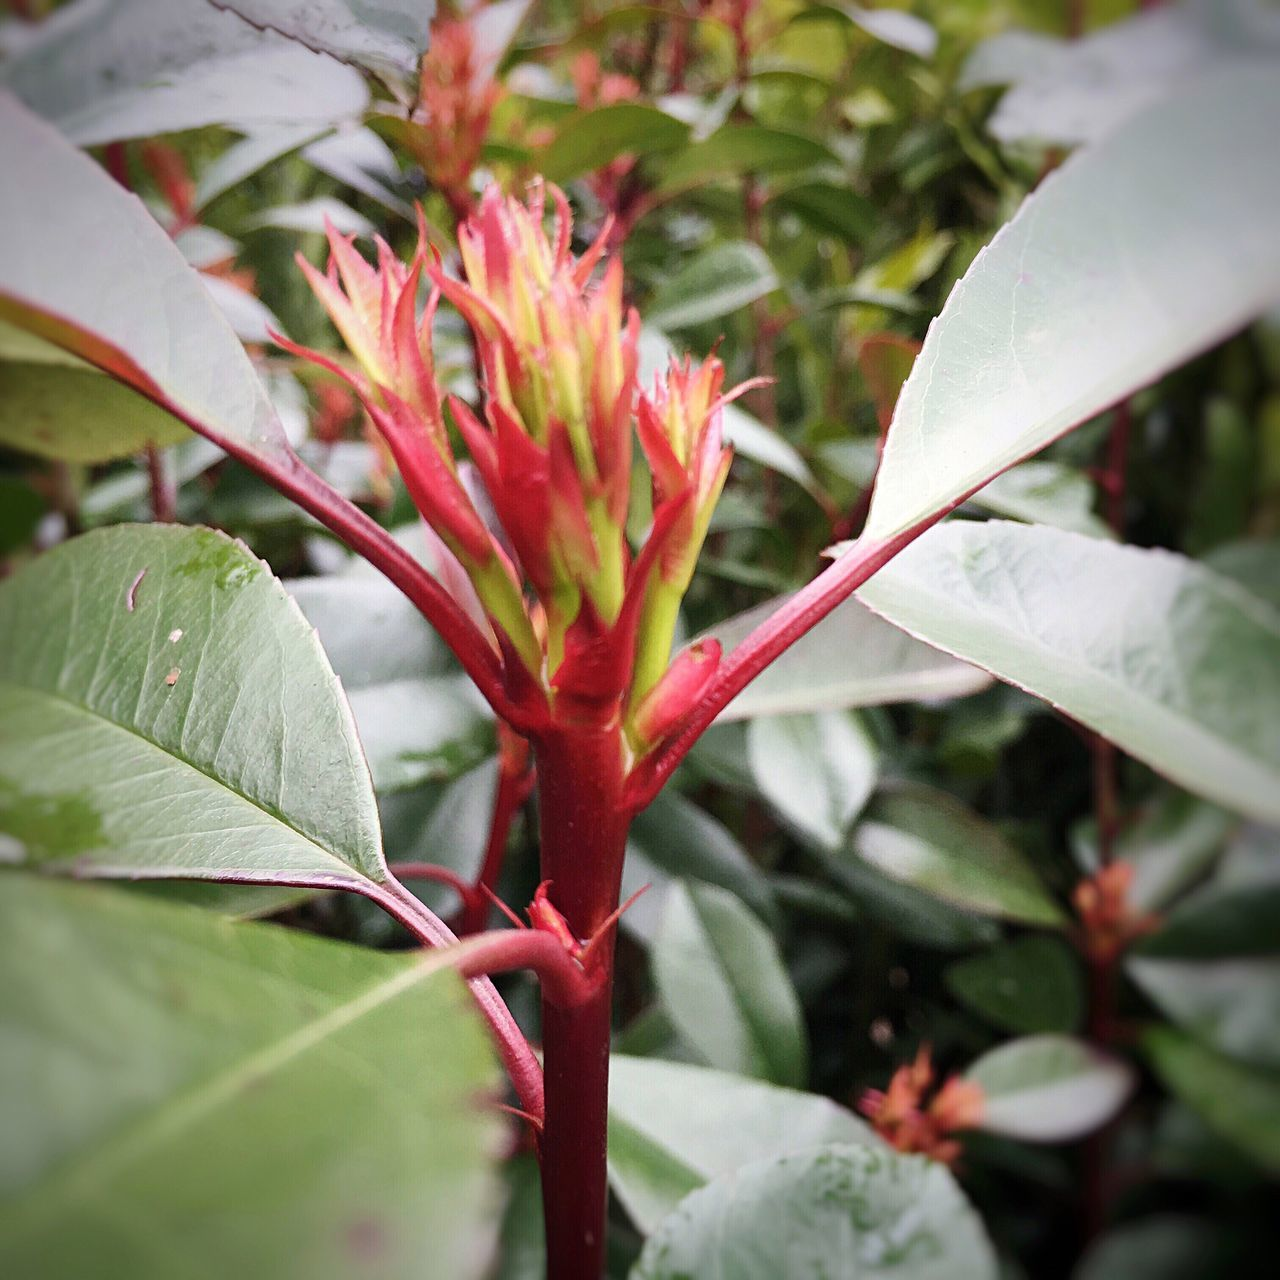 New growth... Spring 2016 Spring Growth Green And Red Leaves Garden Photography Leaves Only Leaves New Leaves